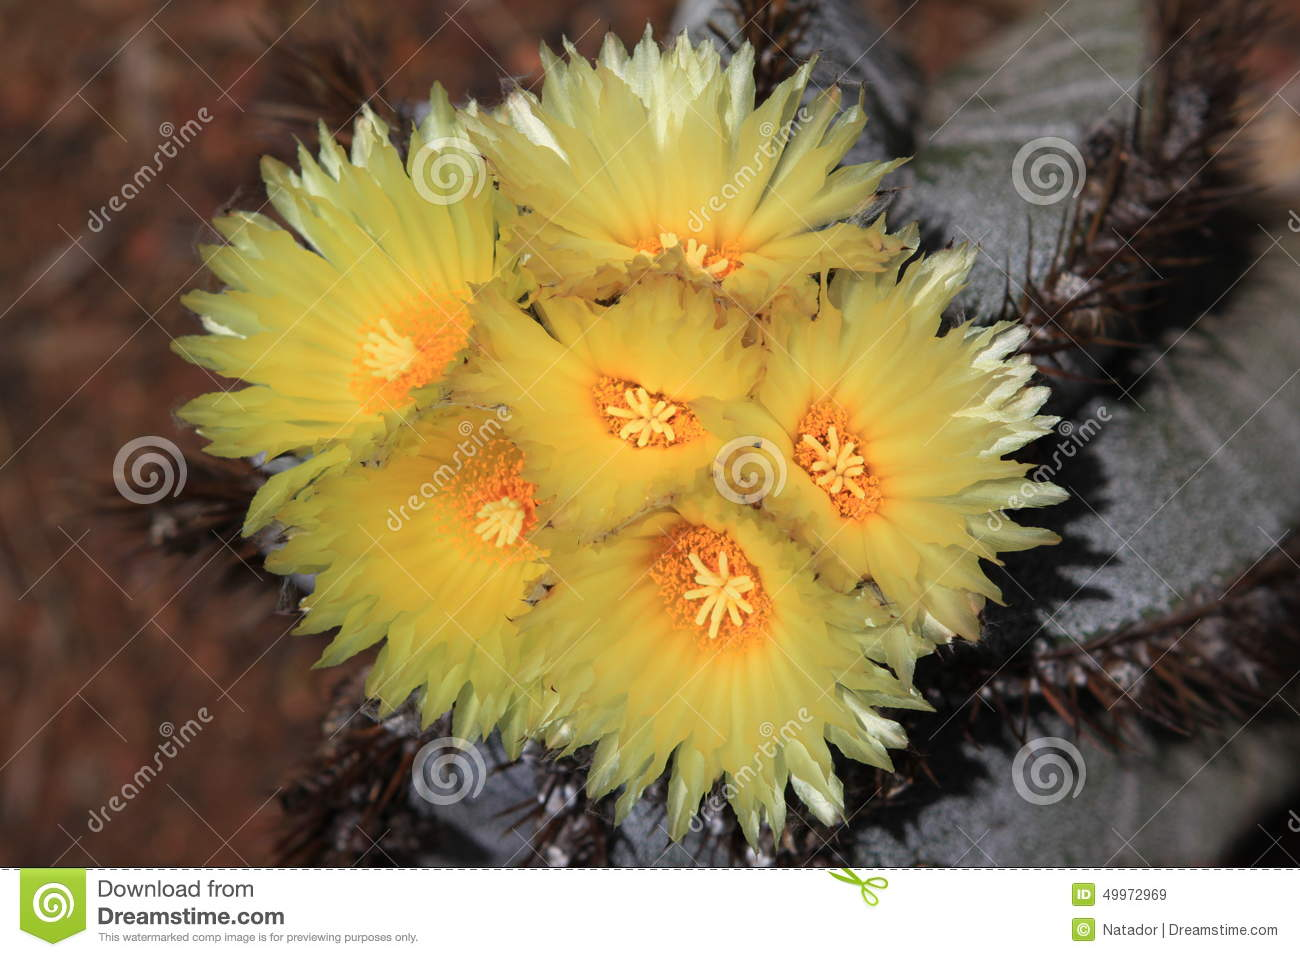 Cactus Flower Stock Image Image Of Postcard Close Flowers 49972969